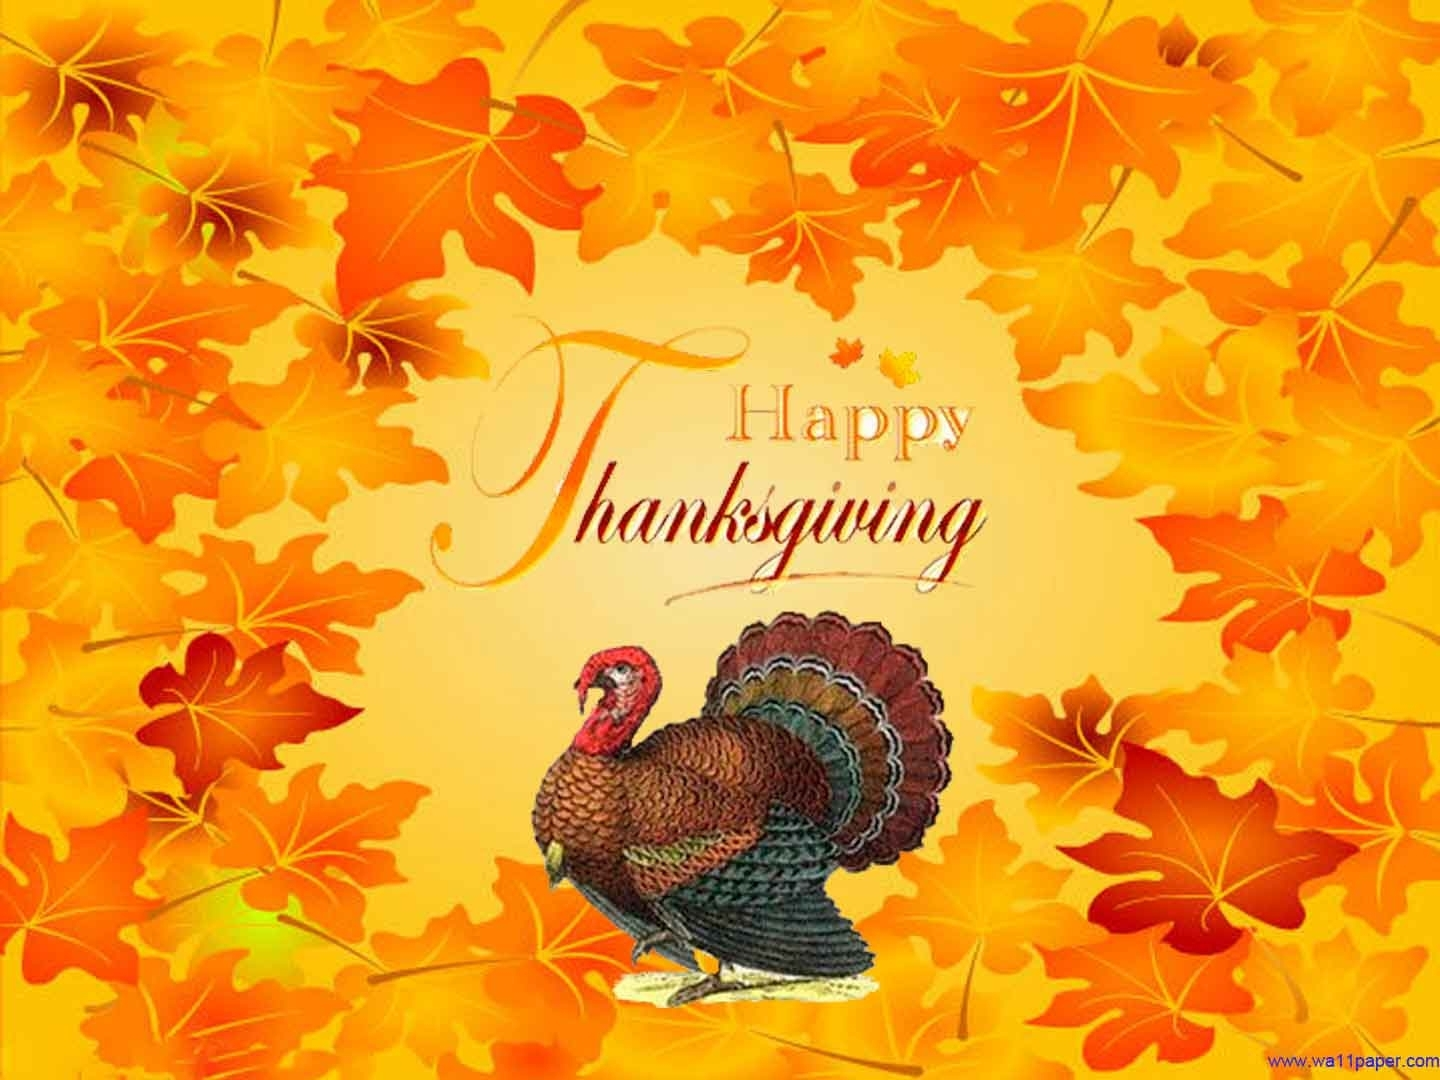 thanks giving wallpapers group (84+)